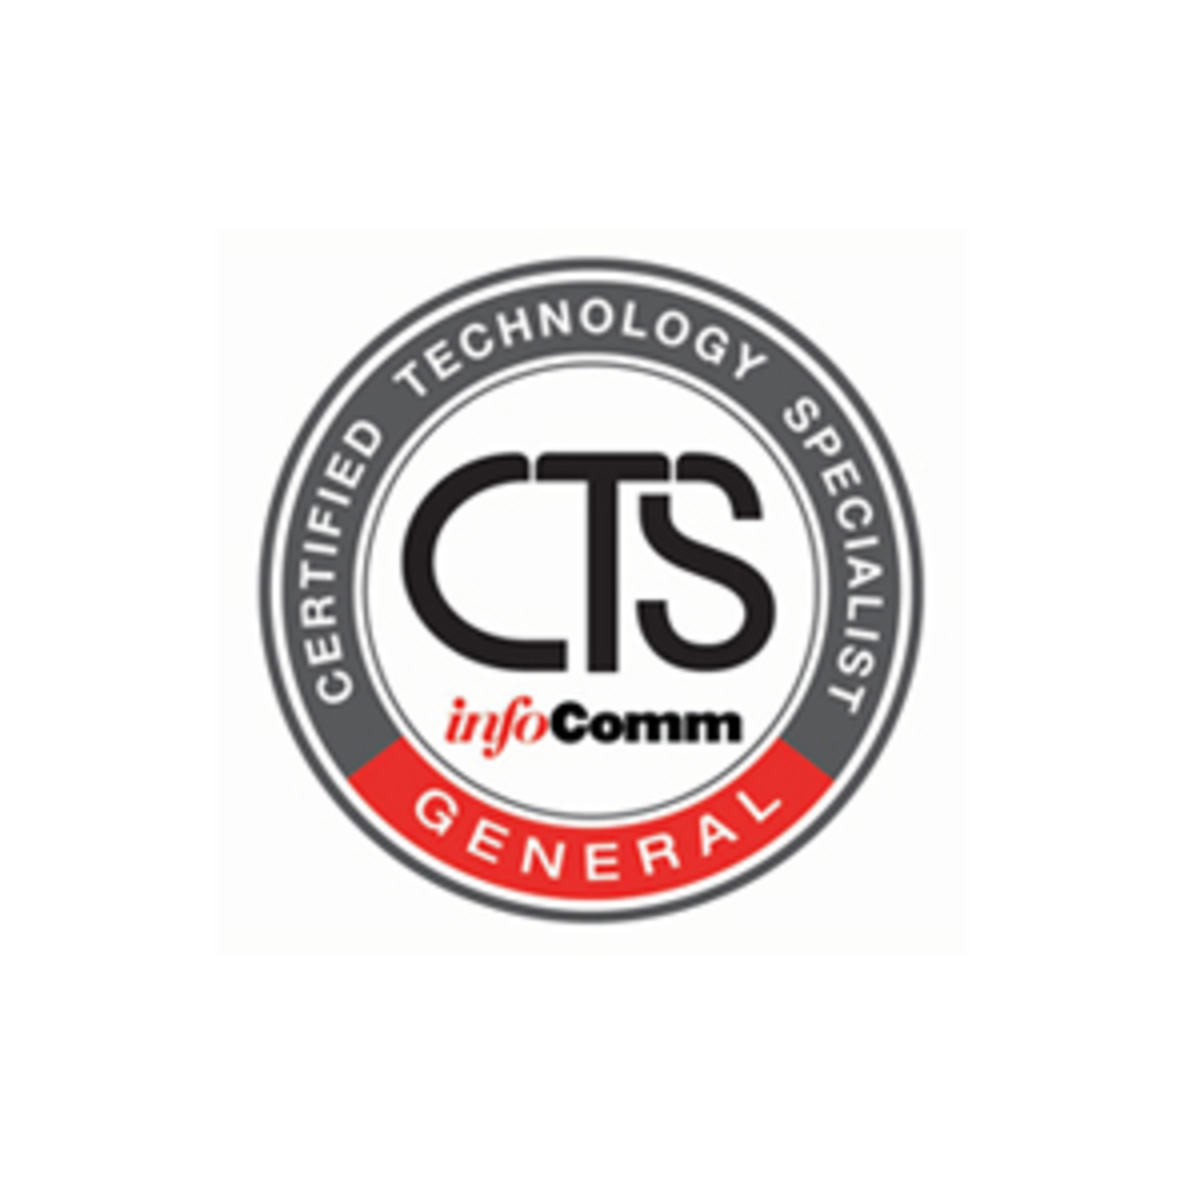 Infocomm Certified Technology Specialist (CTS)